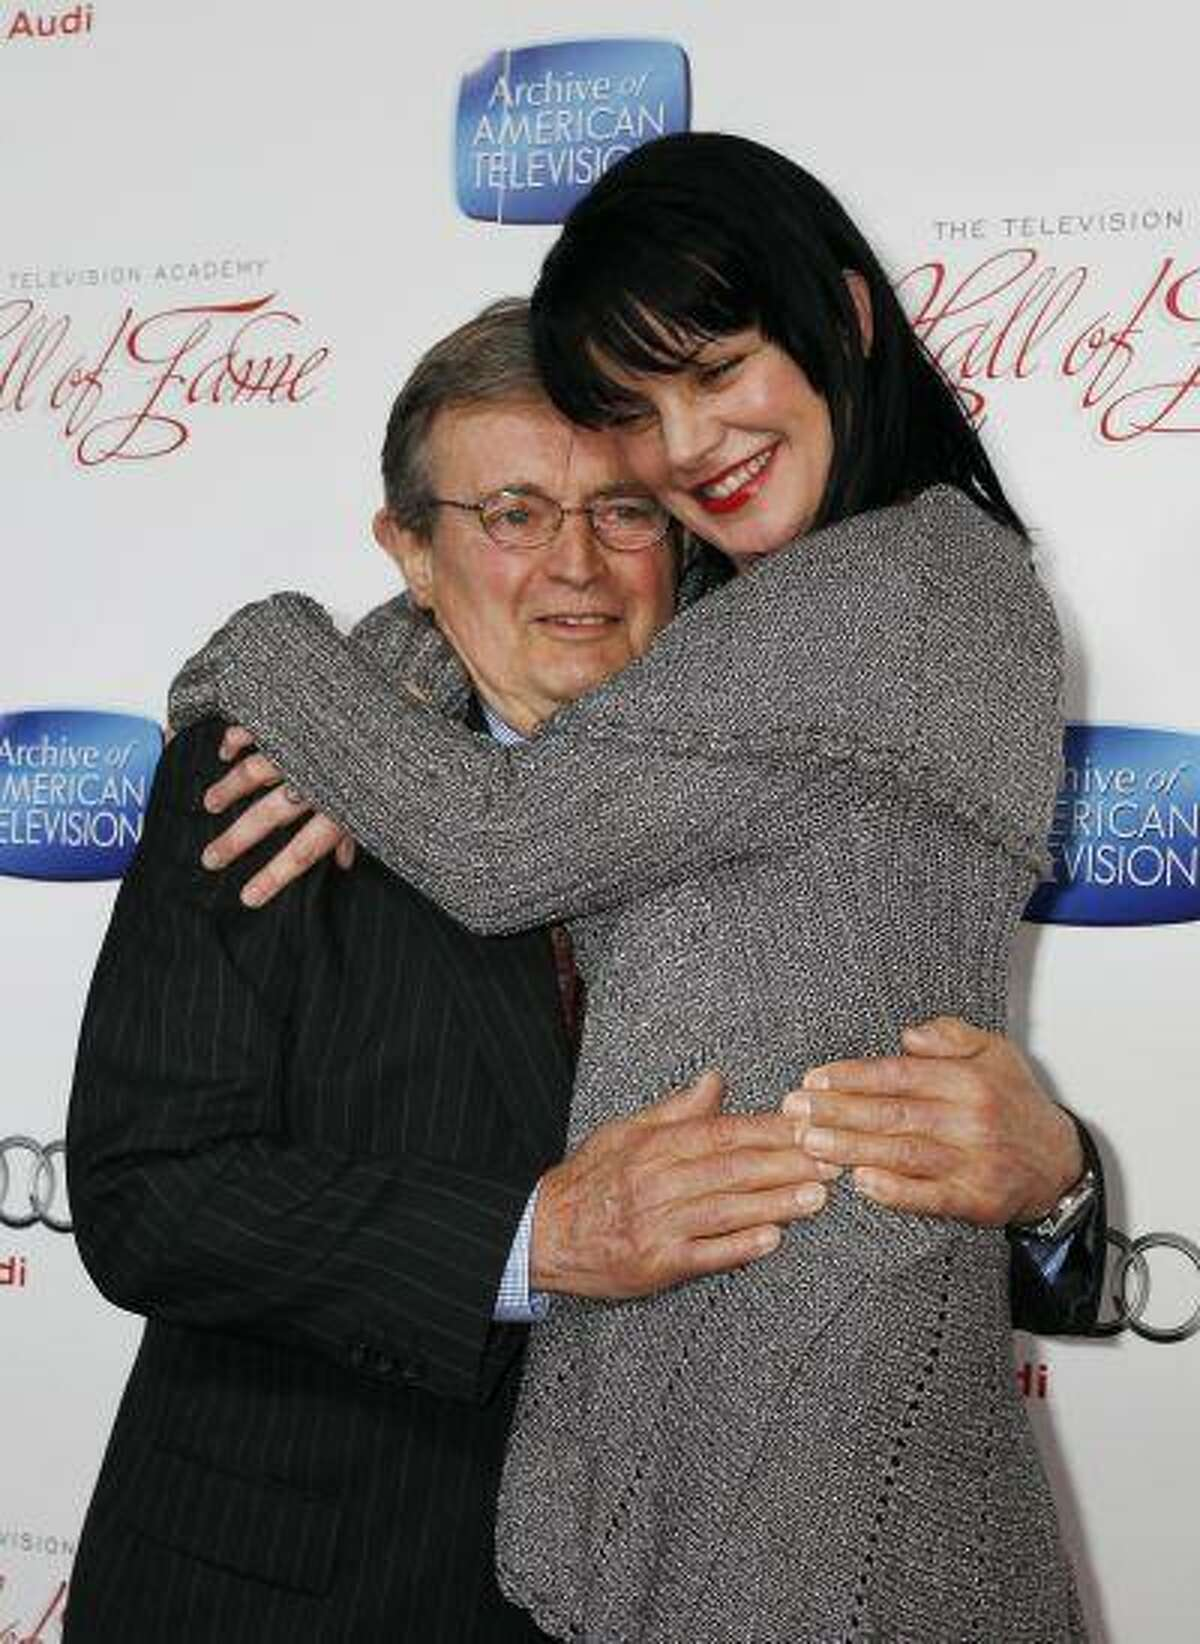 Actor David McCallum poses with co-star Pauley Perrette, both stars of the TV series